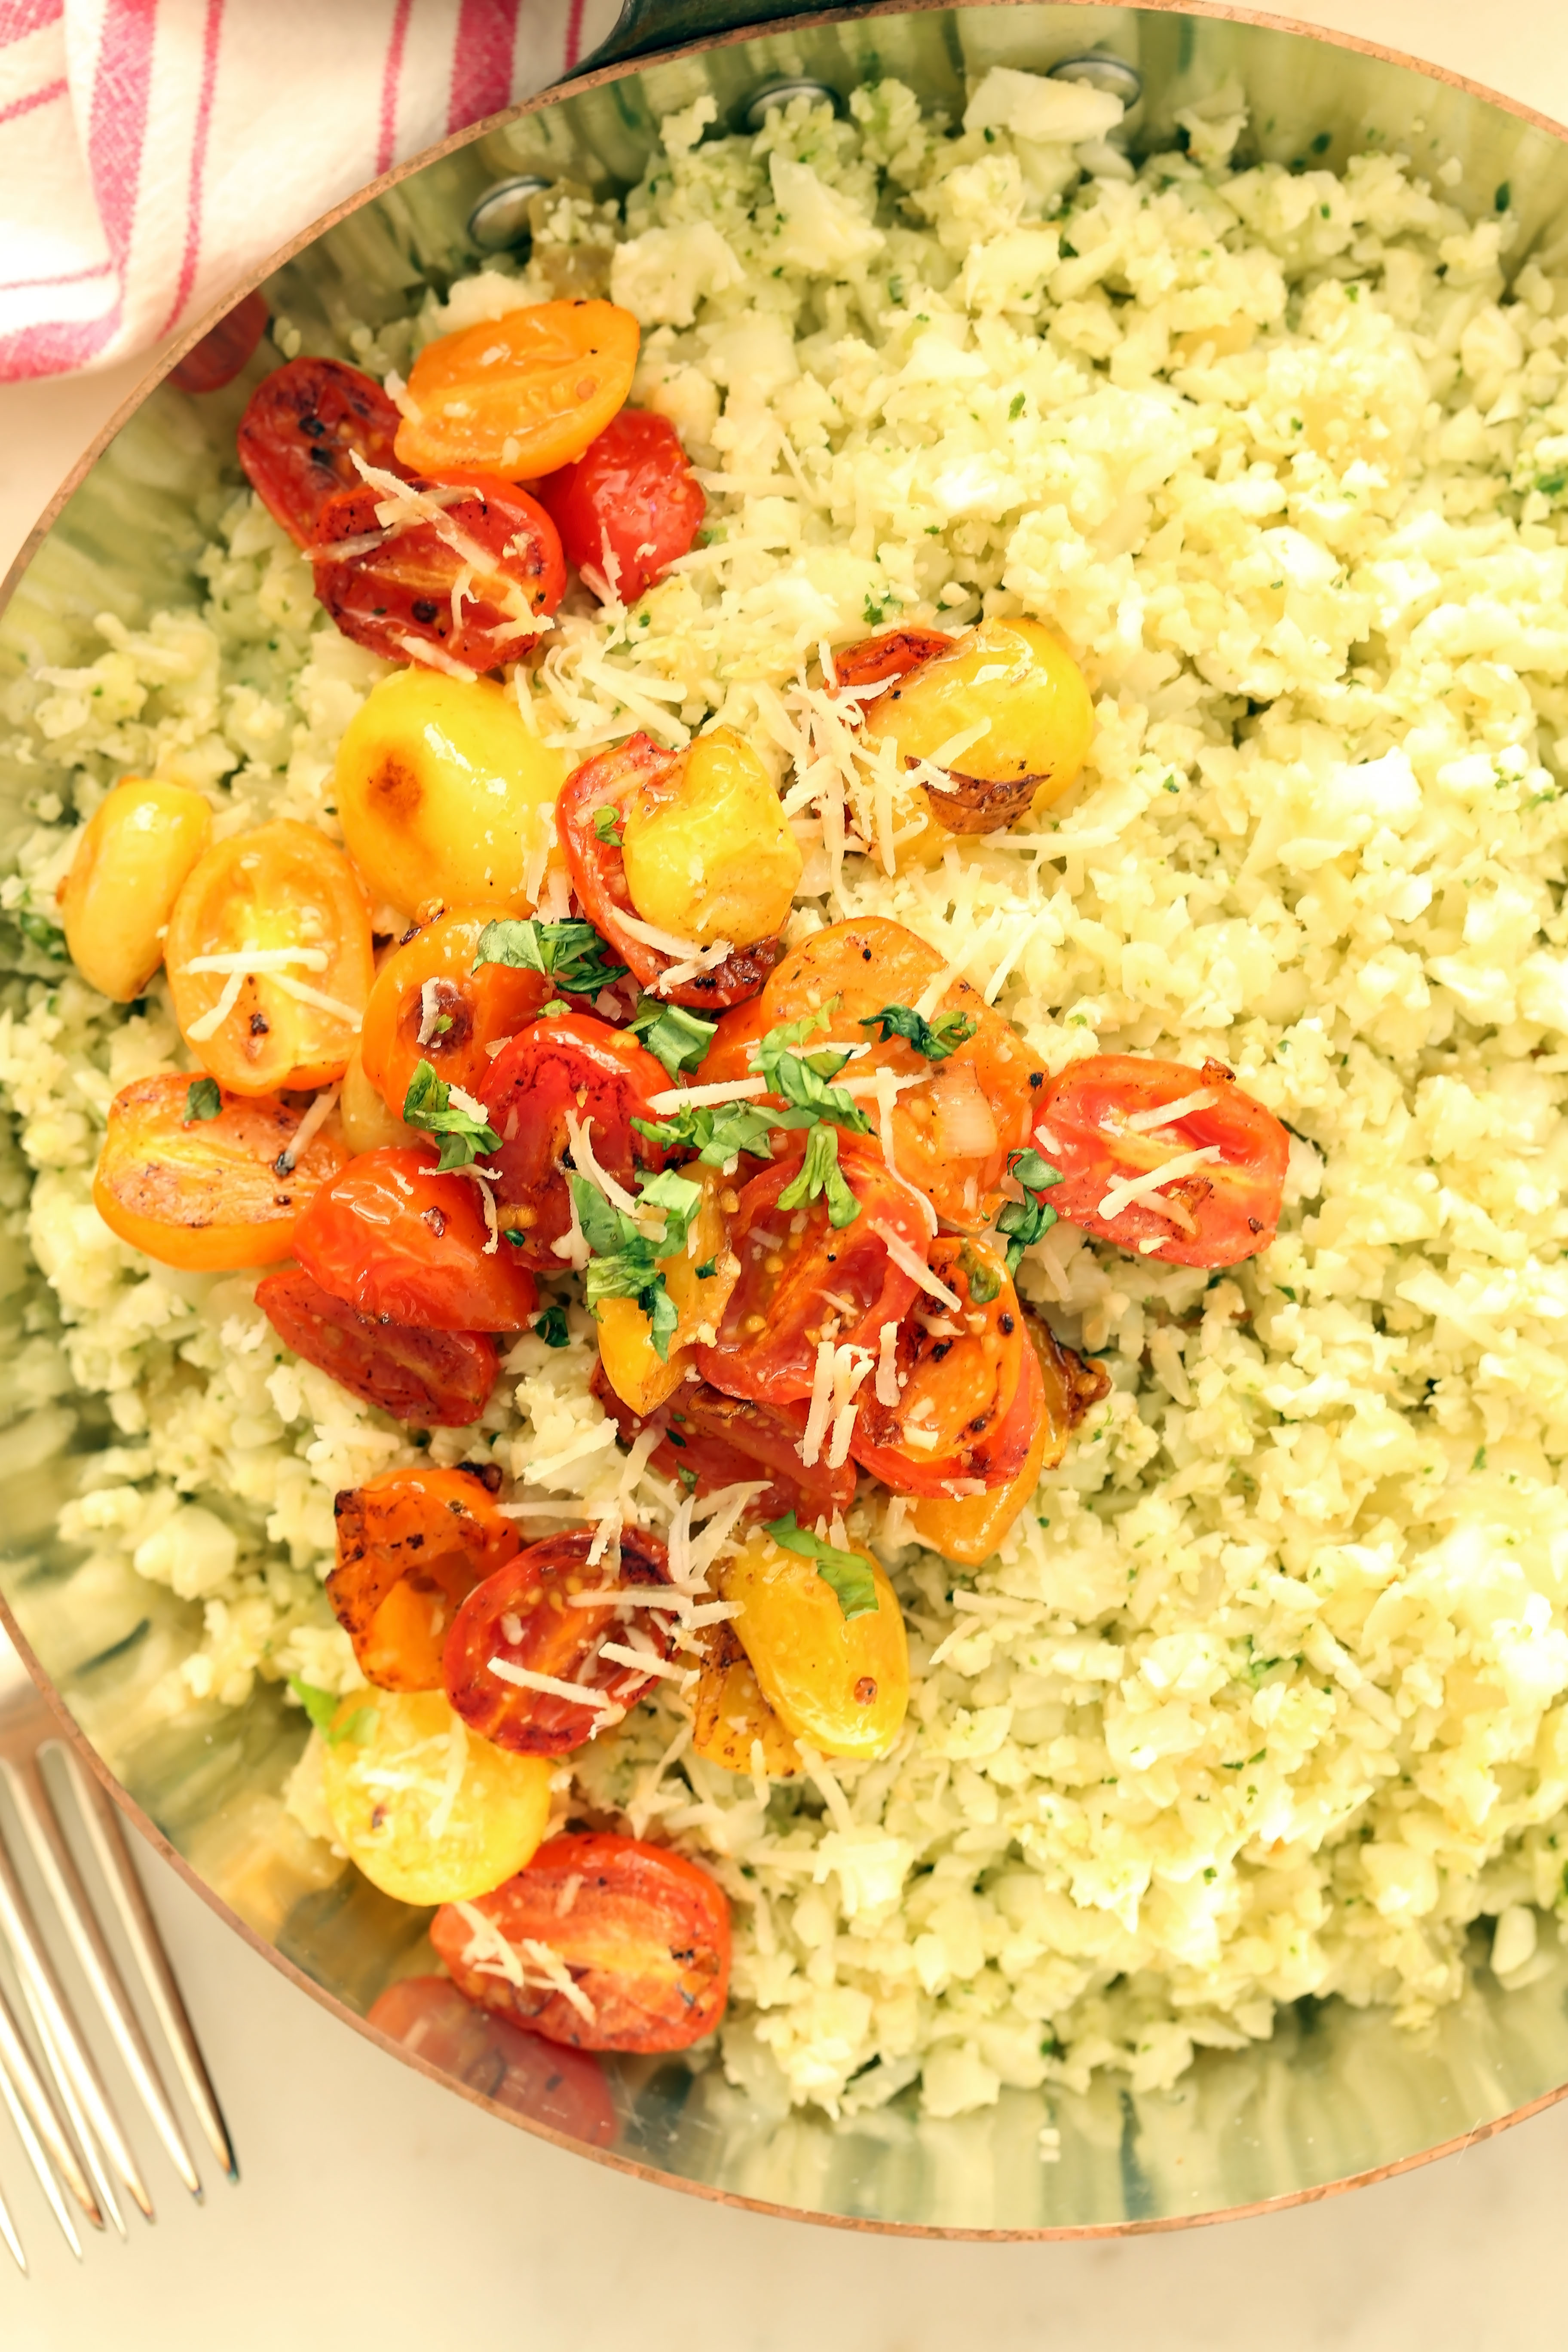 Pesto cauliflower rice the harvest kitchen for Rice side dishes for fish